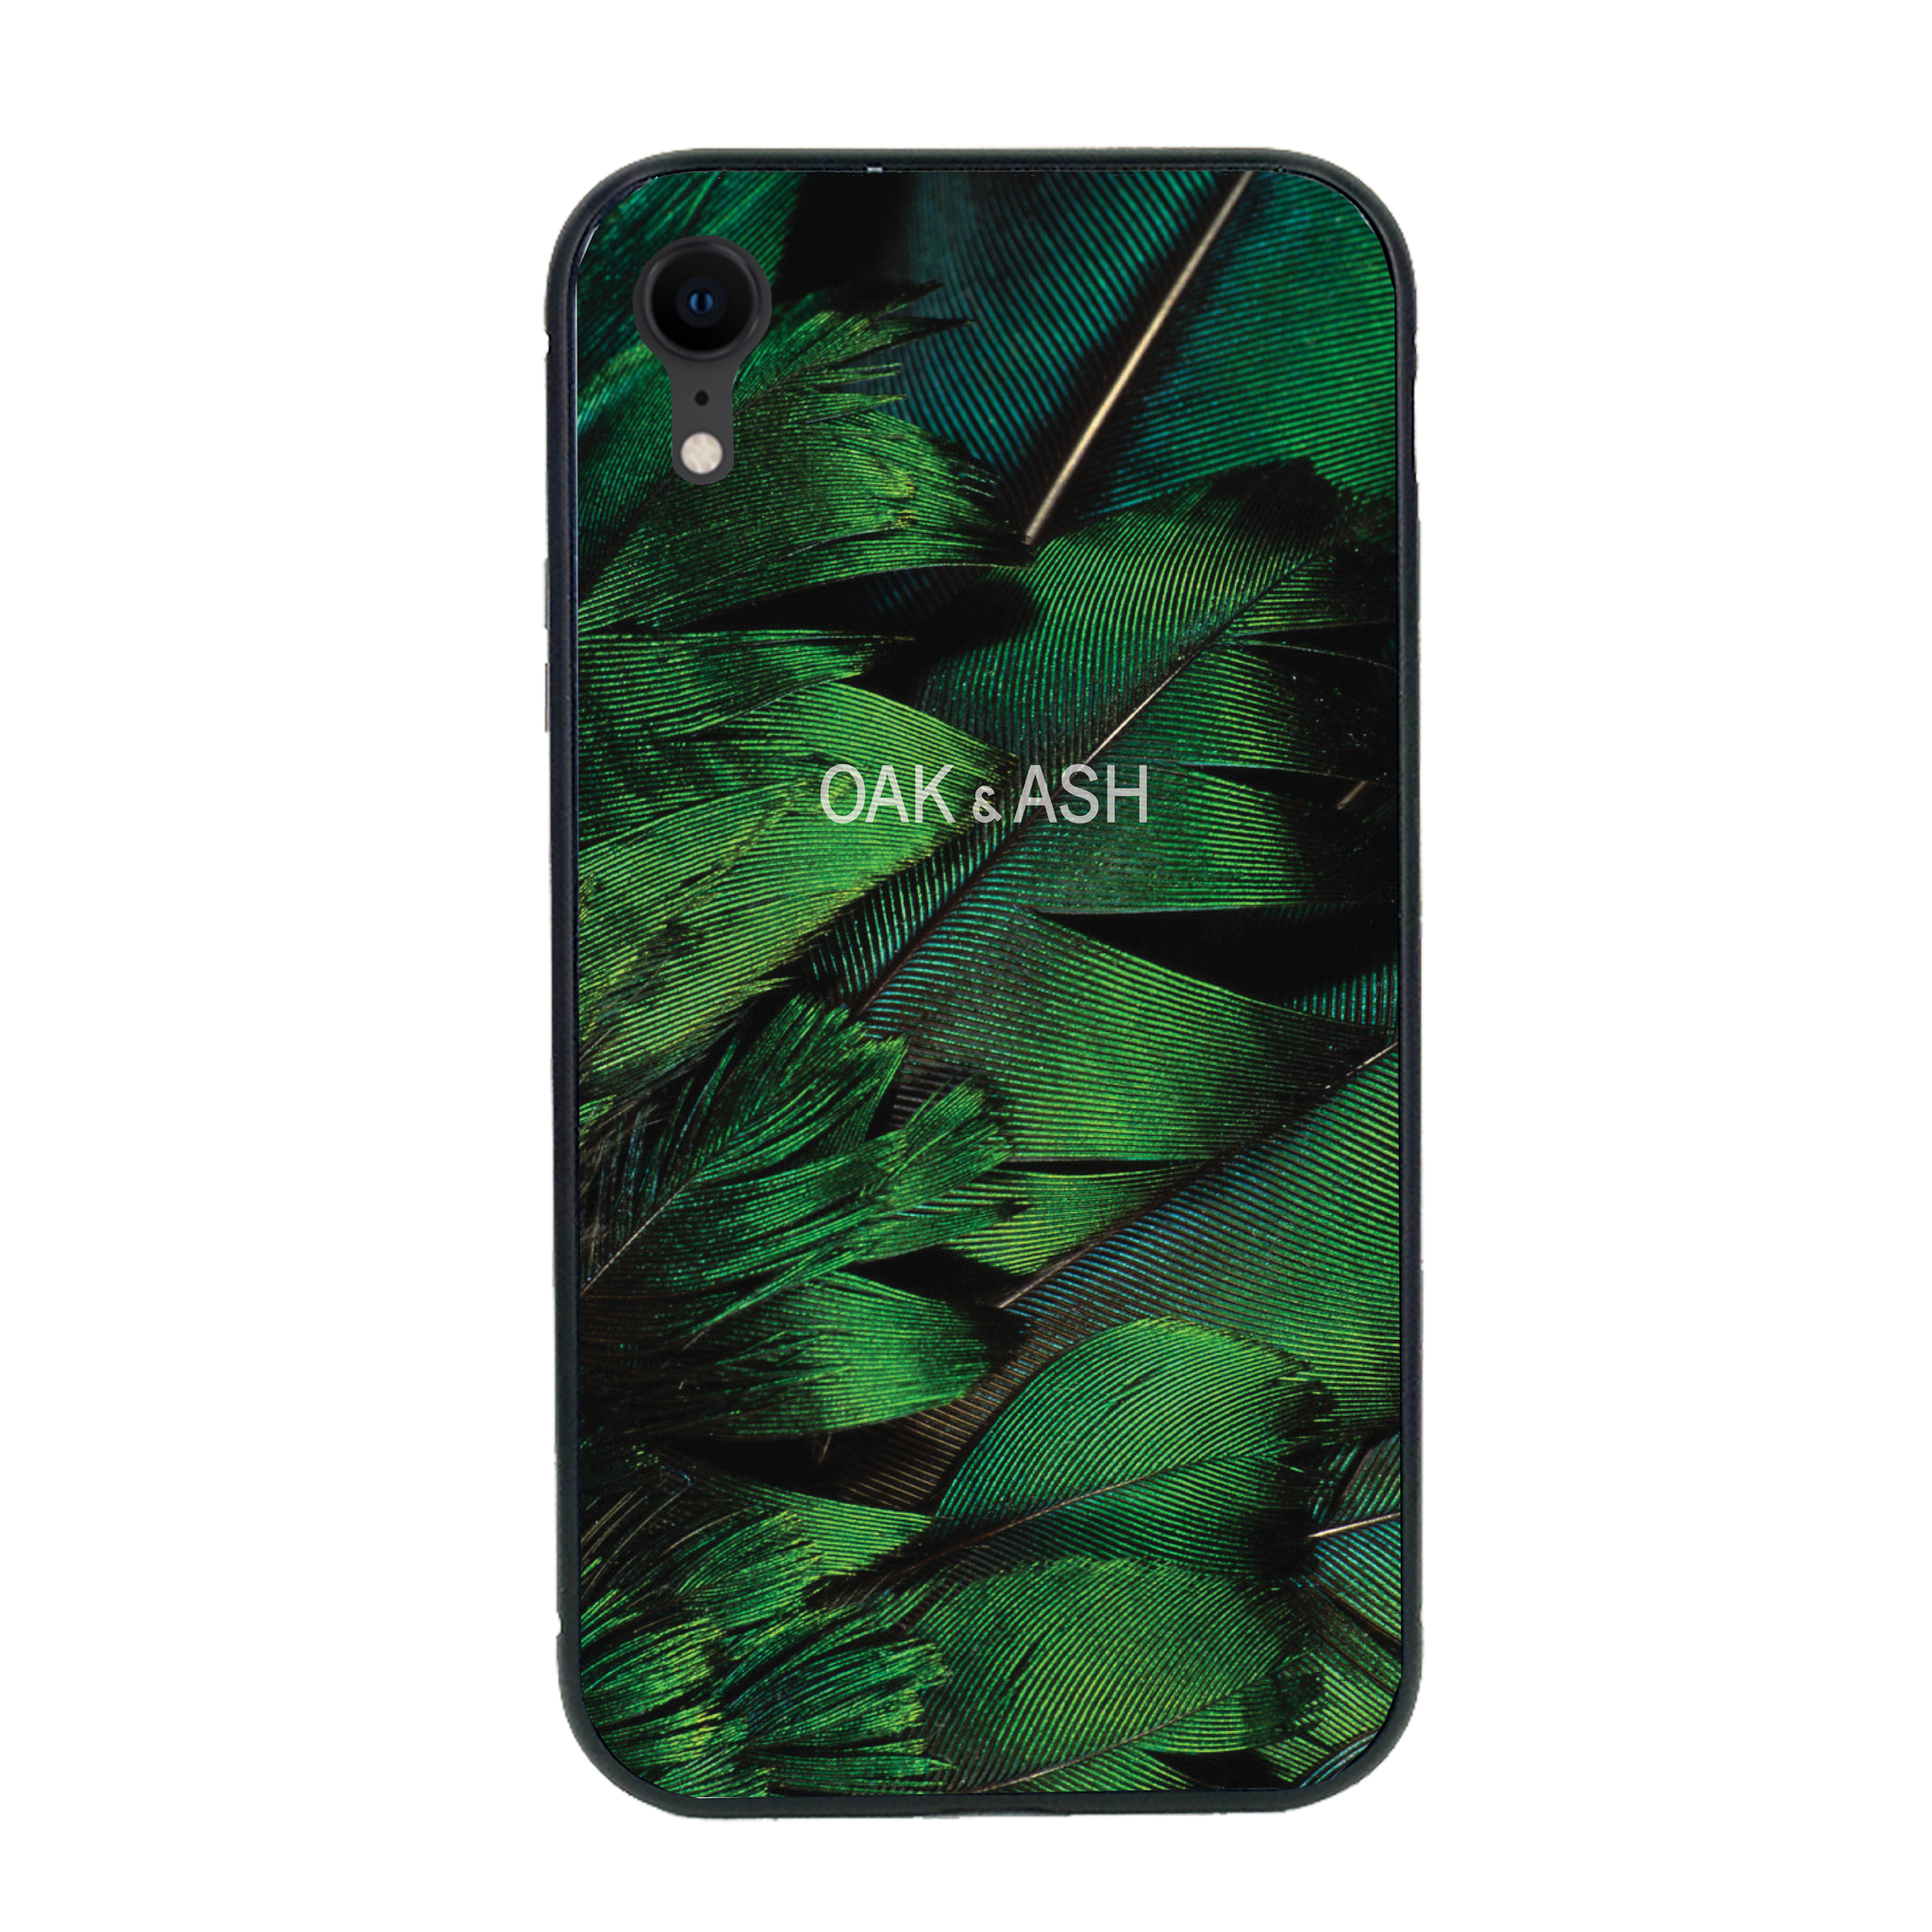 Green Feather | Phone Case for iPhone XR - OAK&ASH